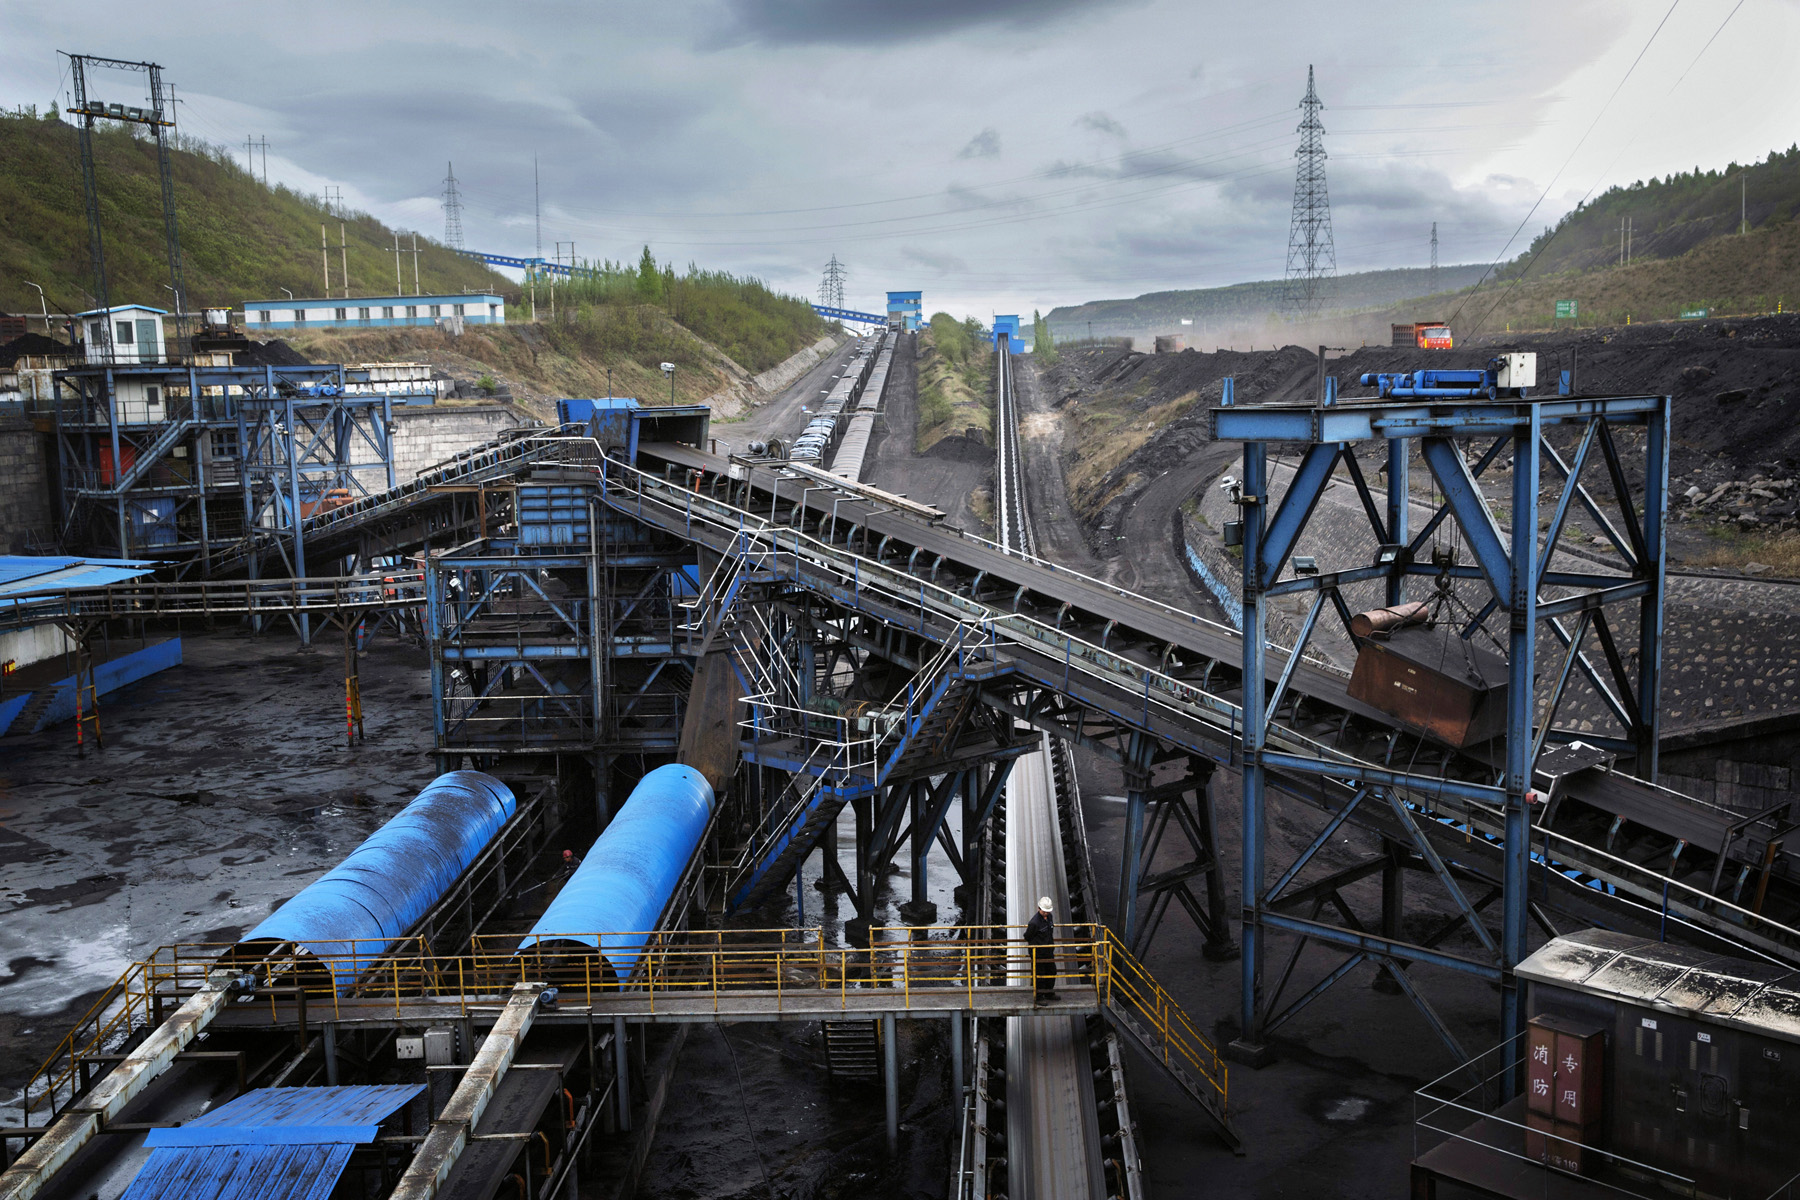 A worker looks over a conveyor moving coal through the An Tai Bao open pit coal mine